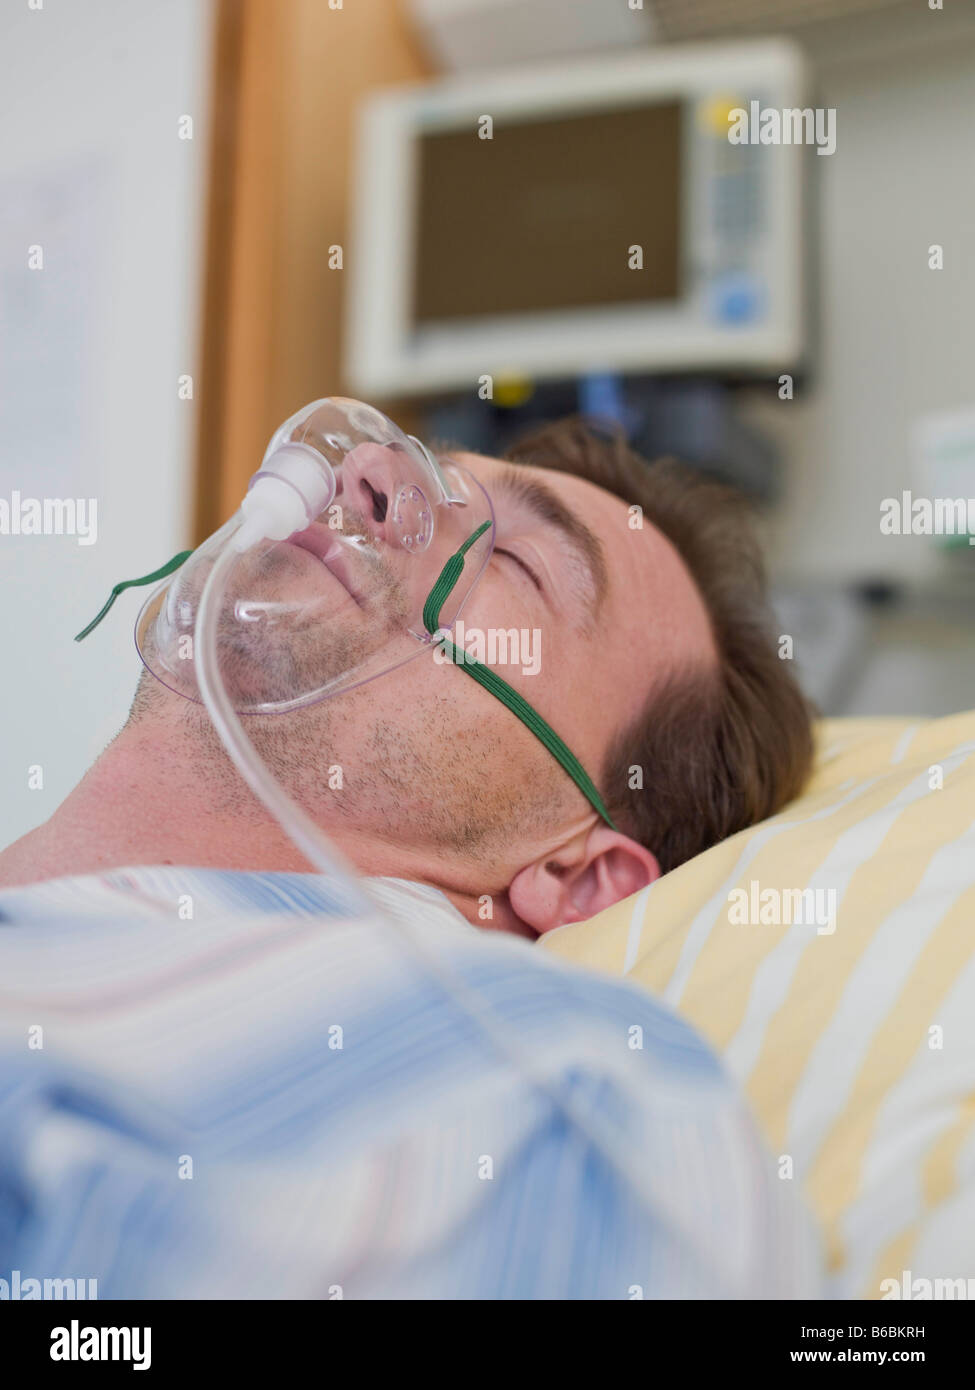 Patient With Oxygen Mask High-Res Stock Photo - Getty Images